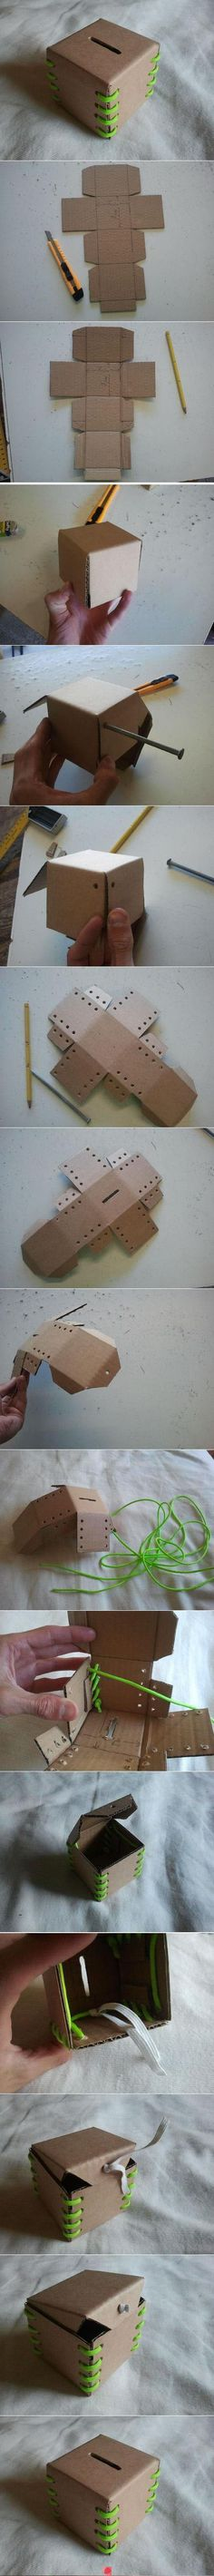 DIY Cardboard Lace-Up Bank